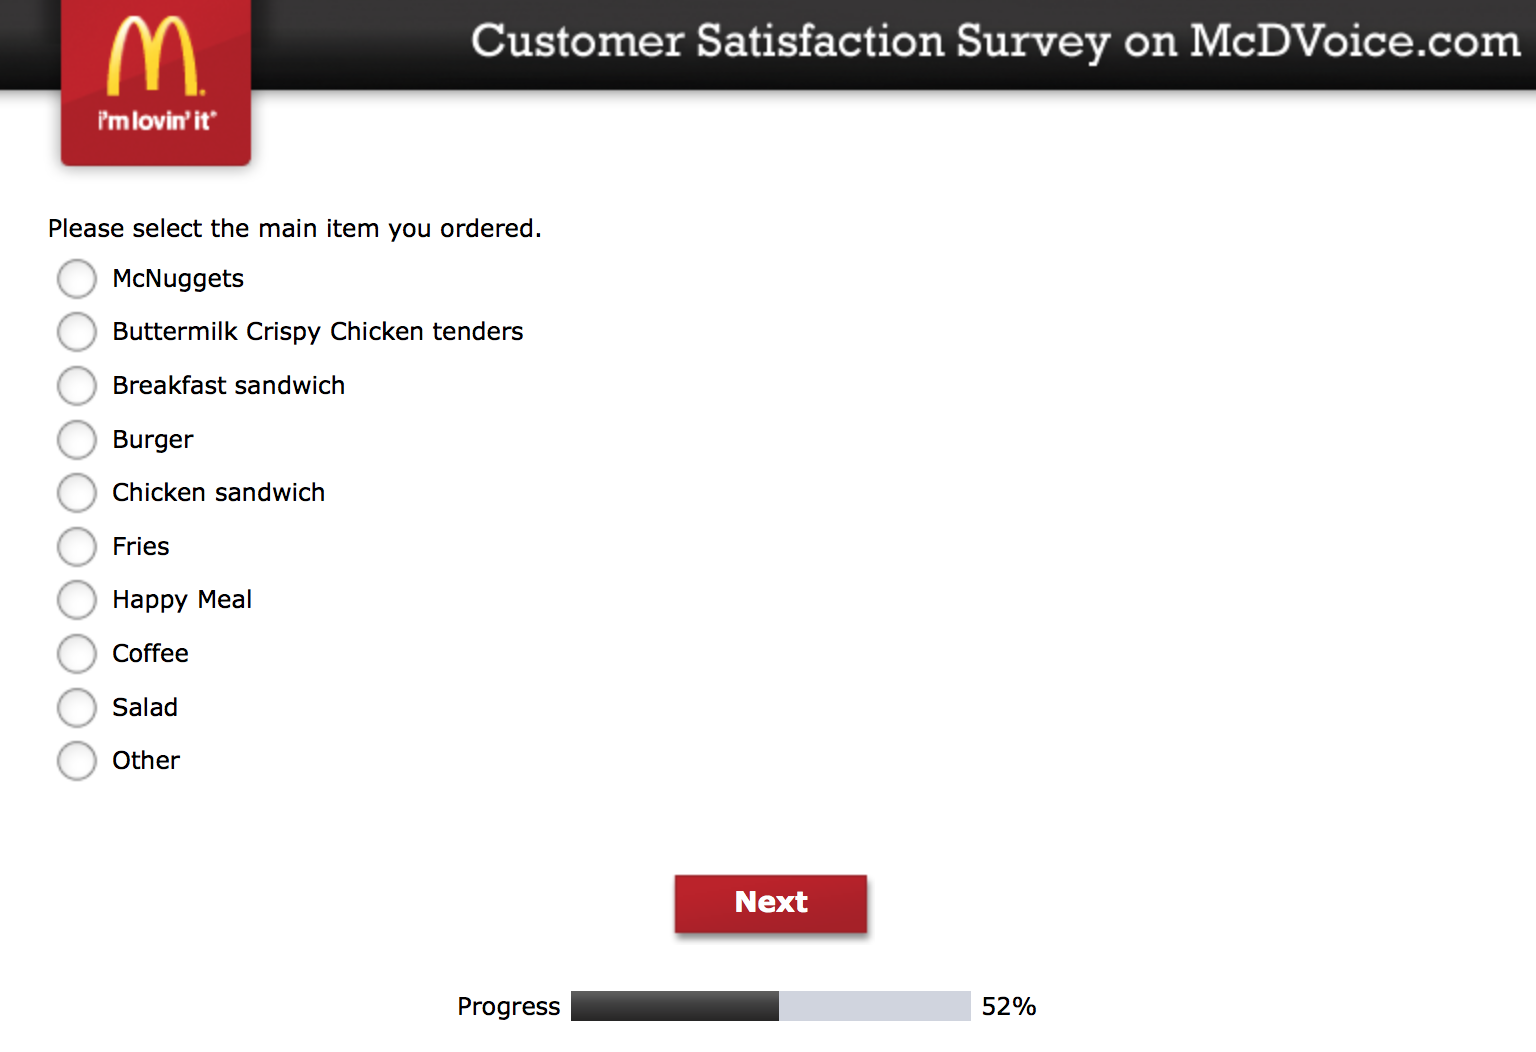 Mcdvoice.com Customer Survey 12